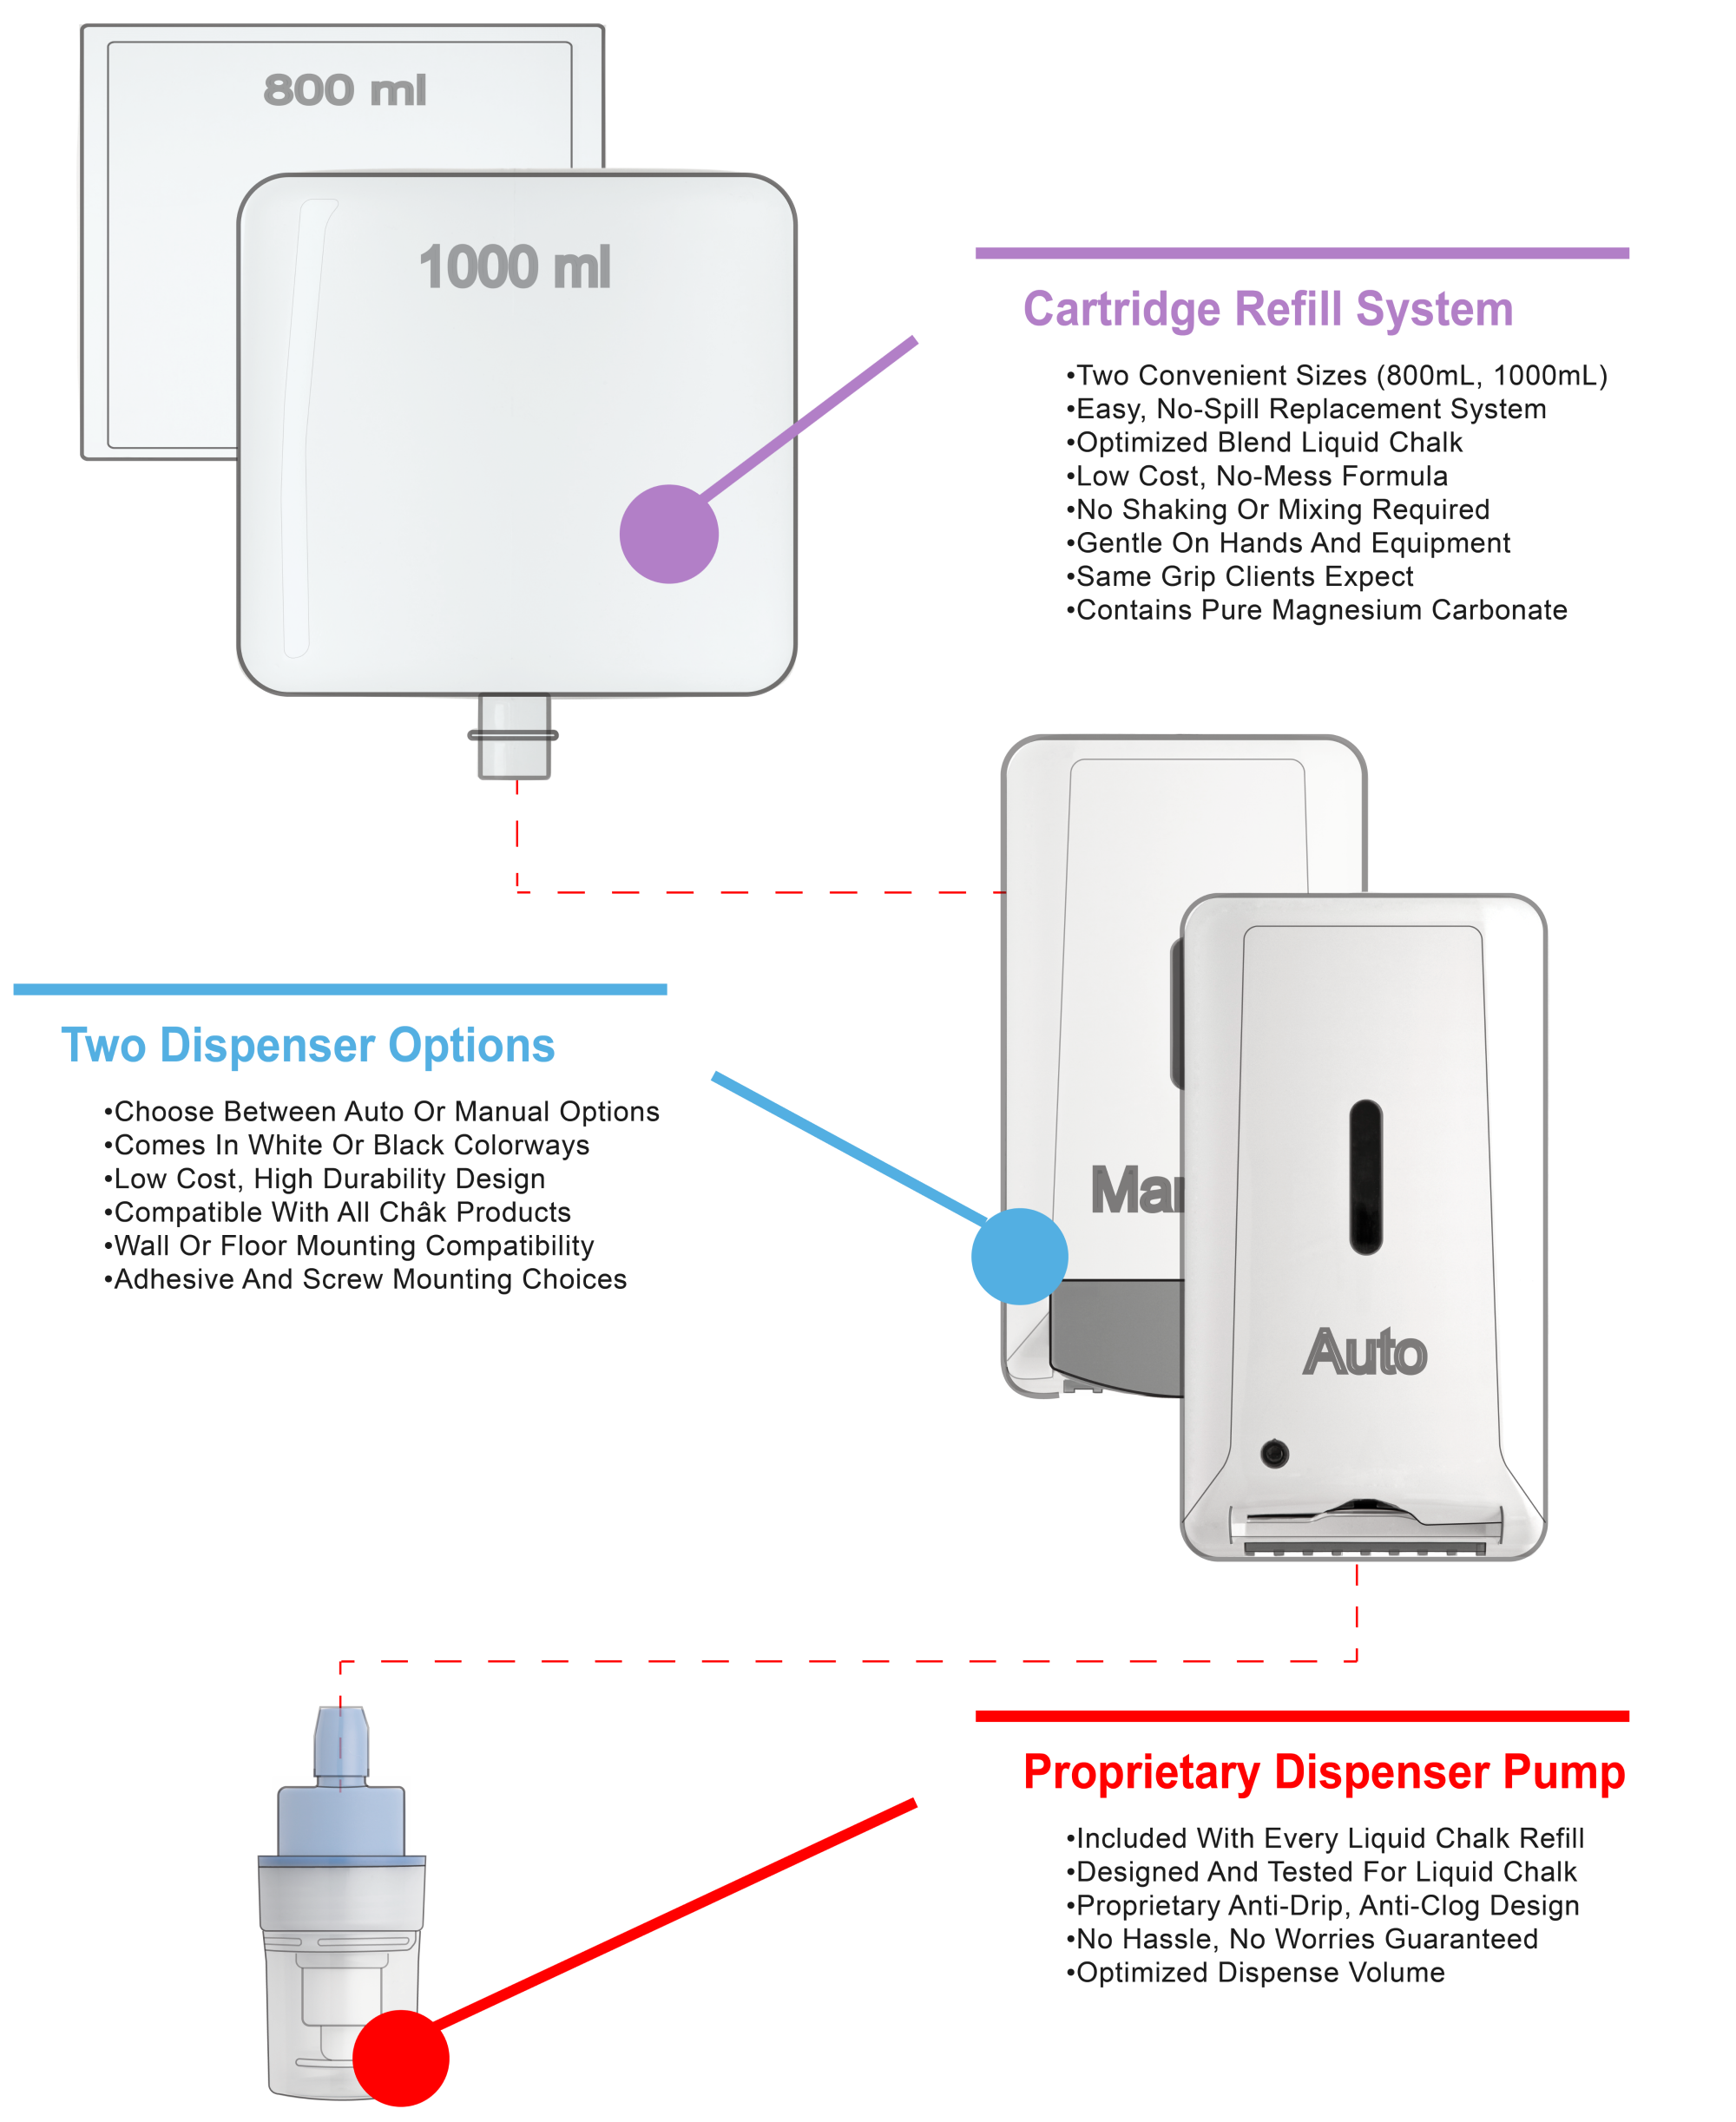 Chak Products liquid chalk system utilizes a cartridge refill system, dispenser, and a dispenser pump